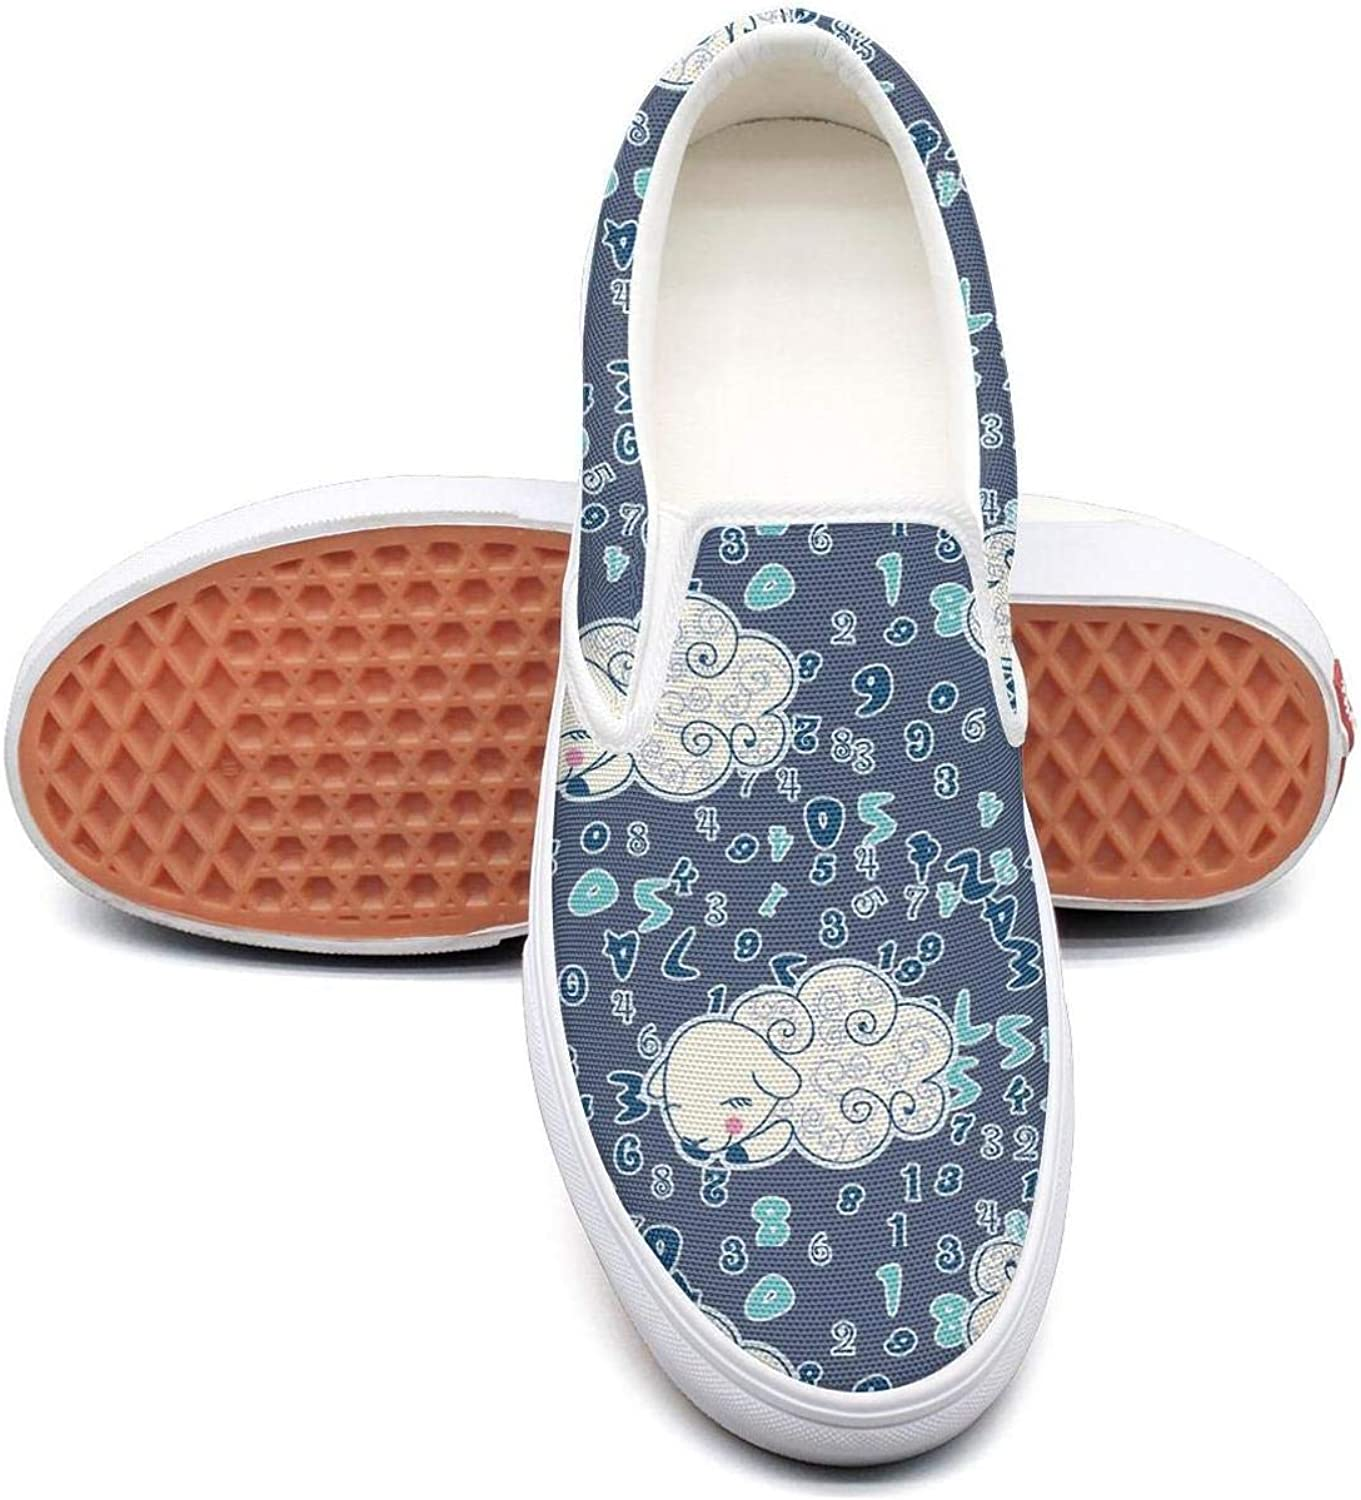 Counting Sleeping Sheep Womens Fashion Slip on Low Top Canvas Tennis shoes